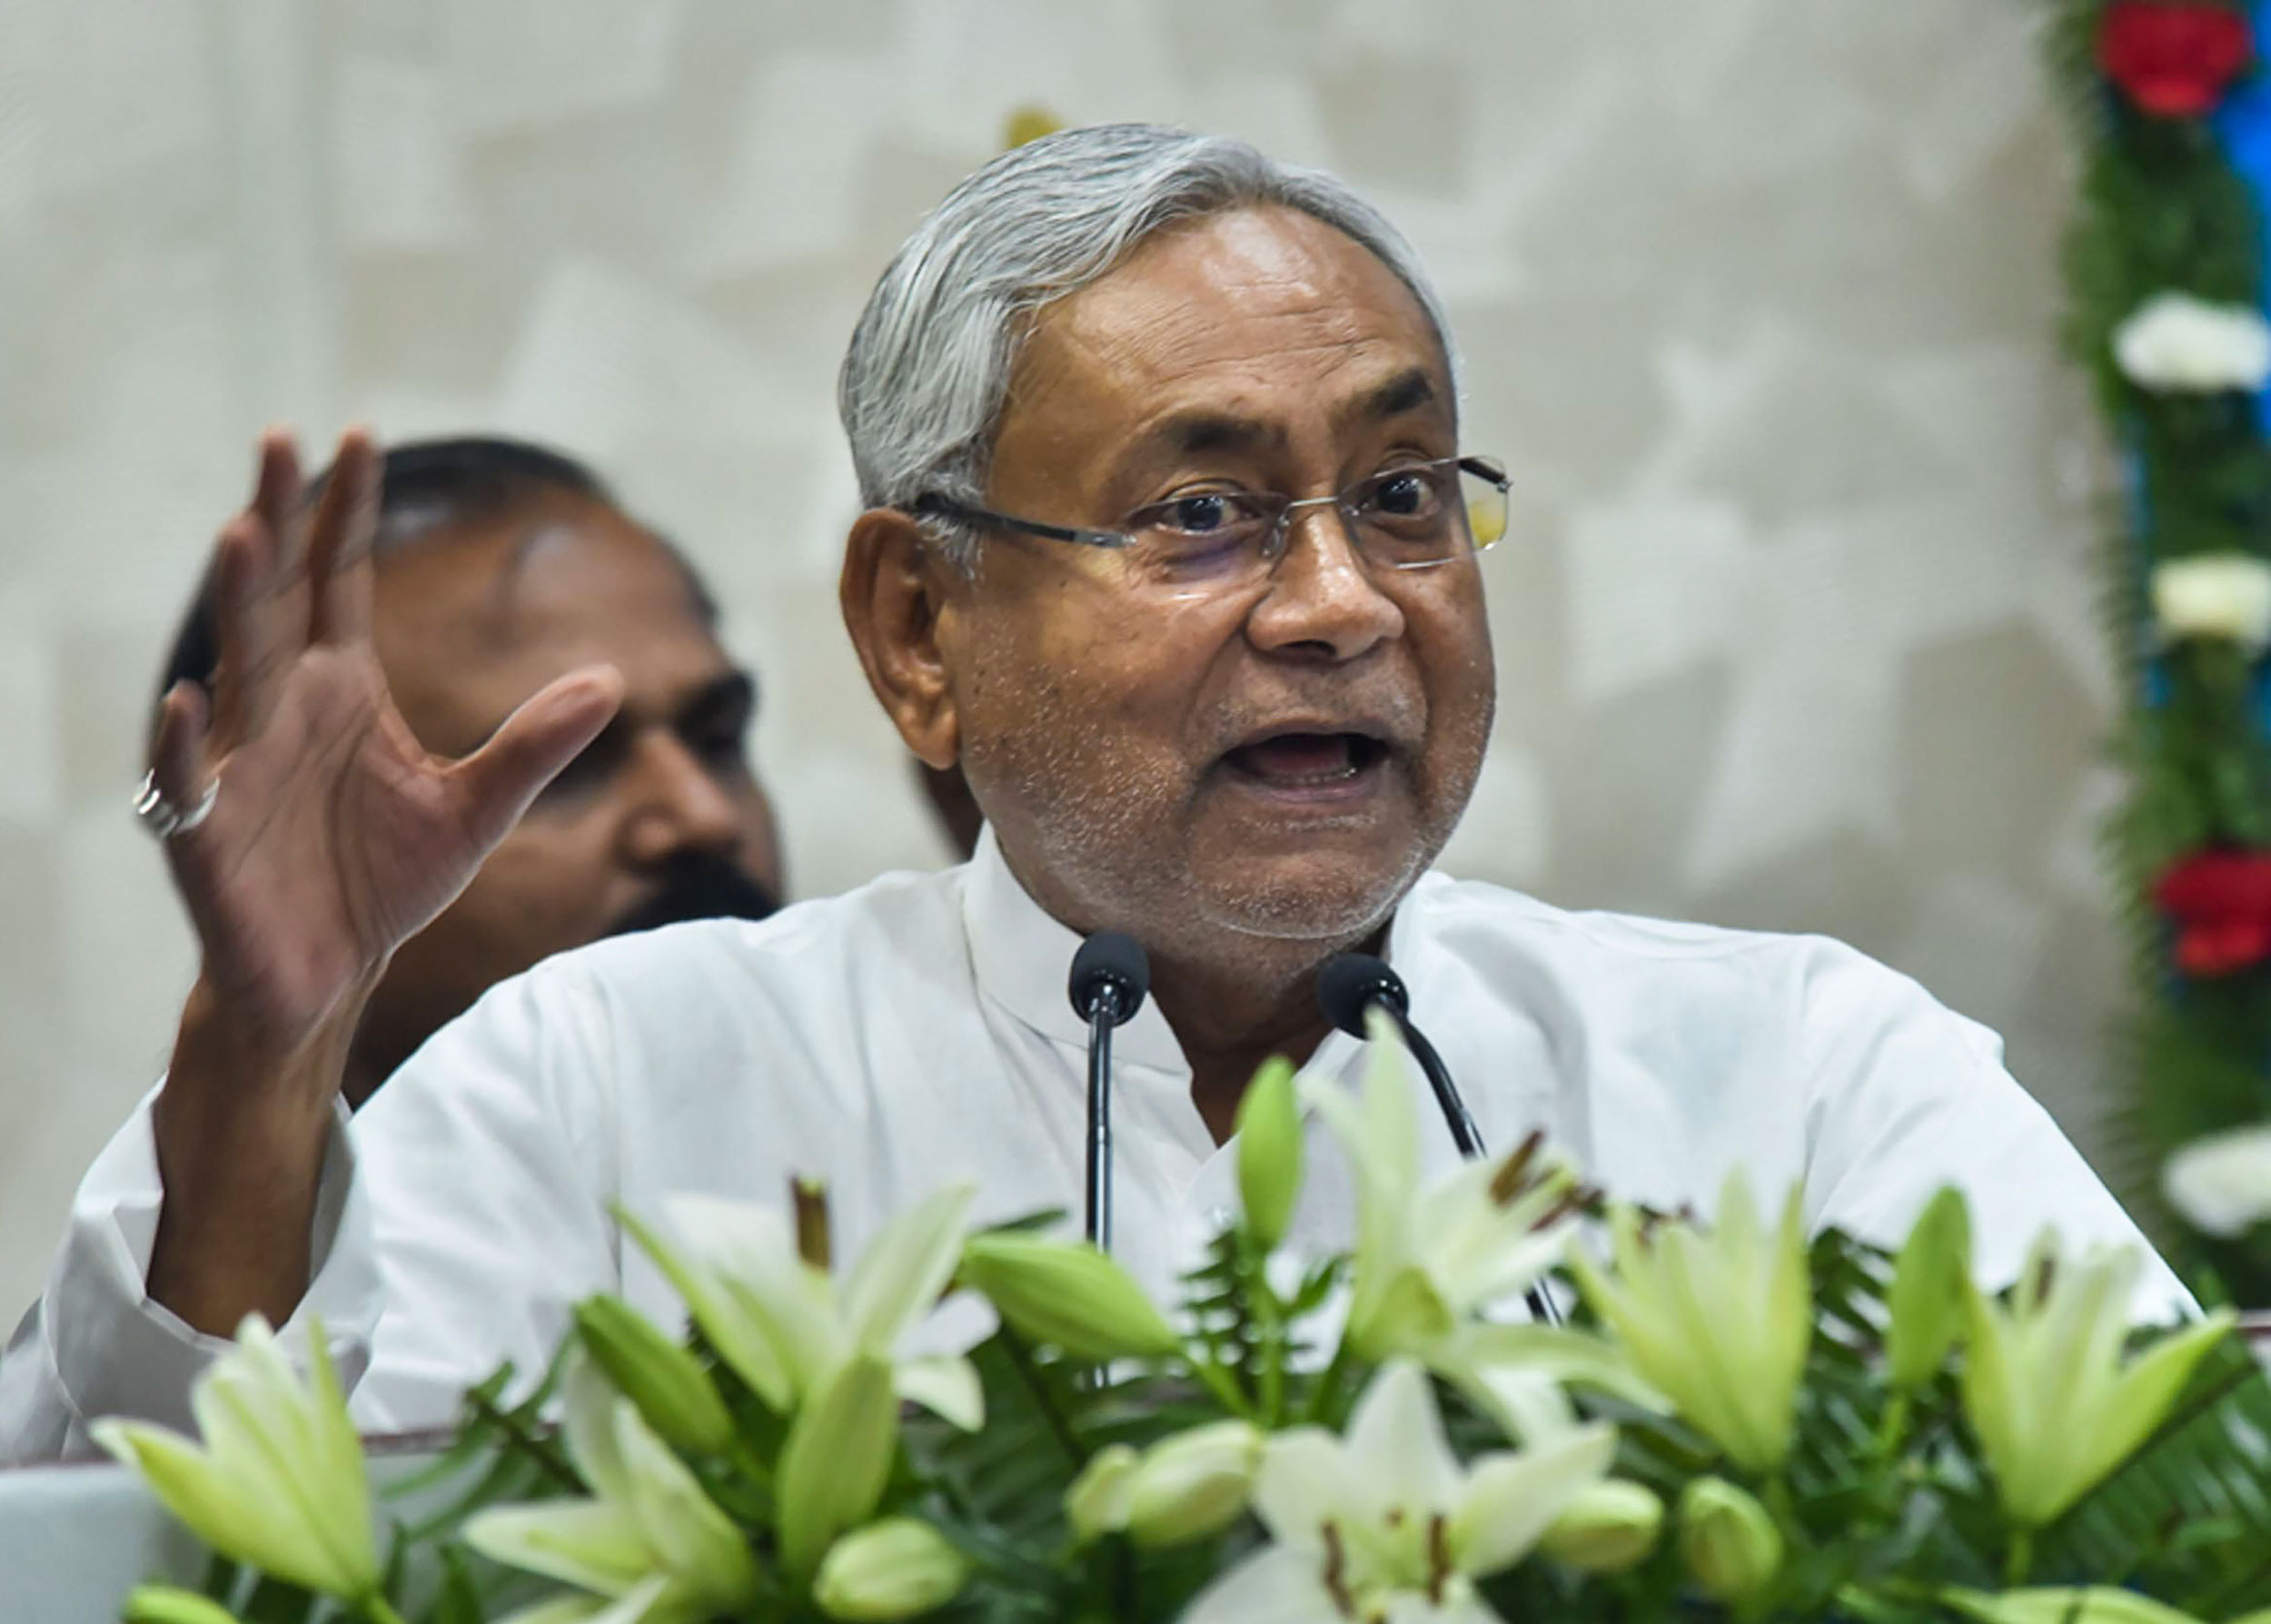 Chief minister Nitish Kumar appealed to the people of Bihar stranded in other states to stay put there as his government was determined to provide help to them during the lockdown.